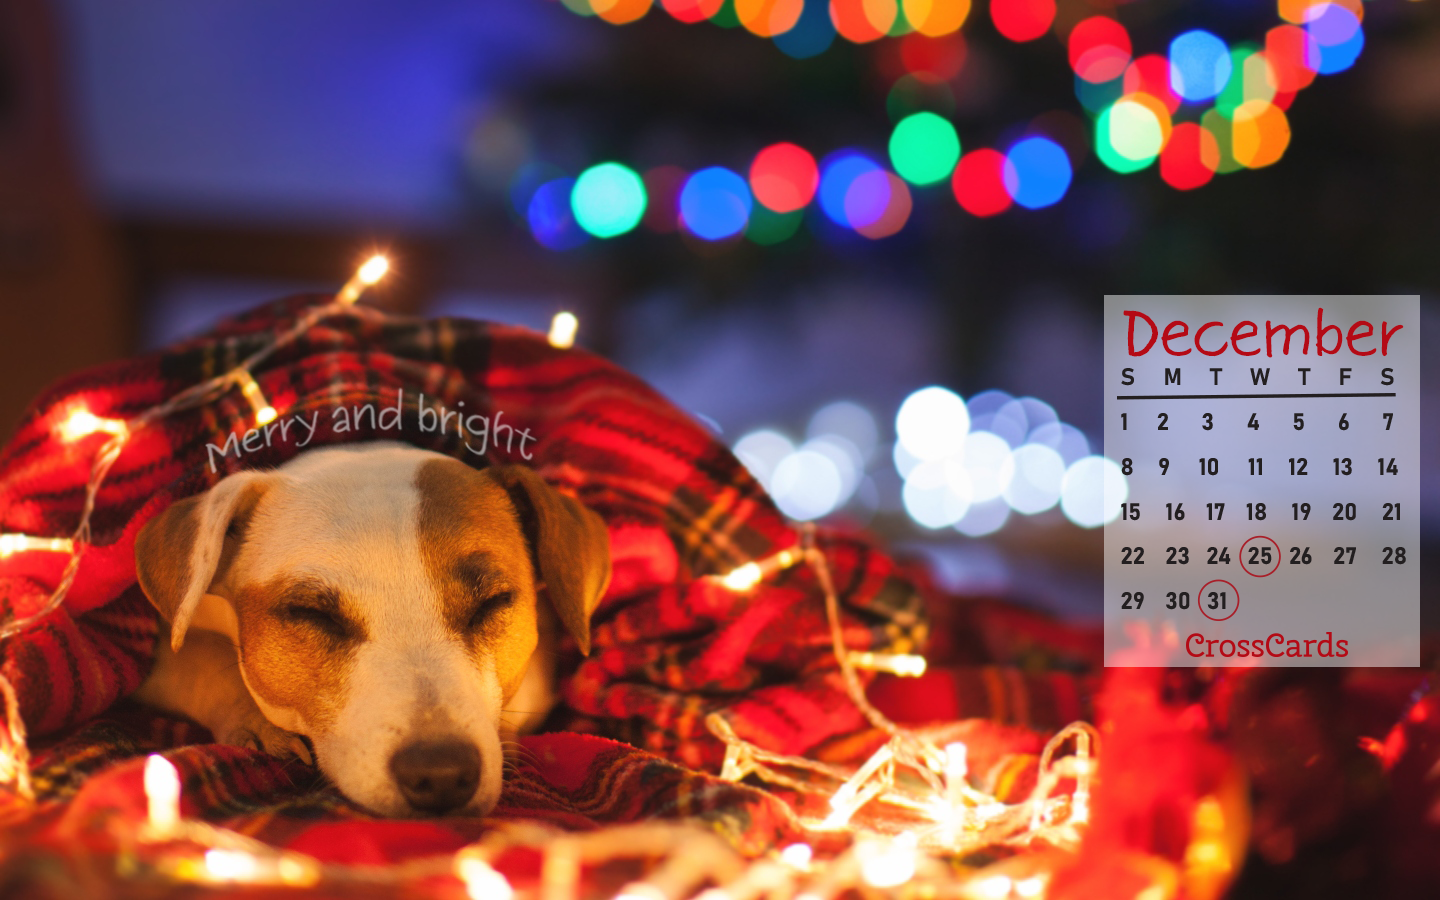 December 2019 - Christmas Lights ecard, online card